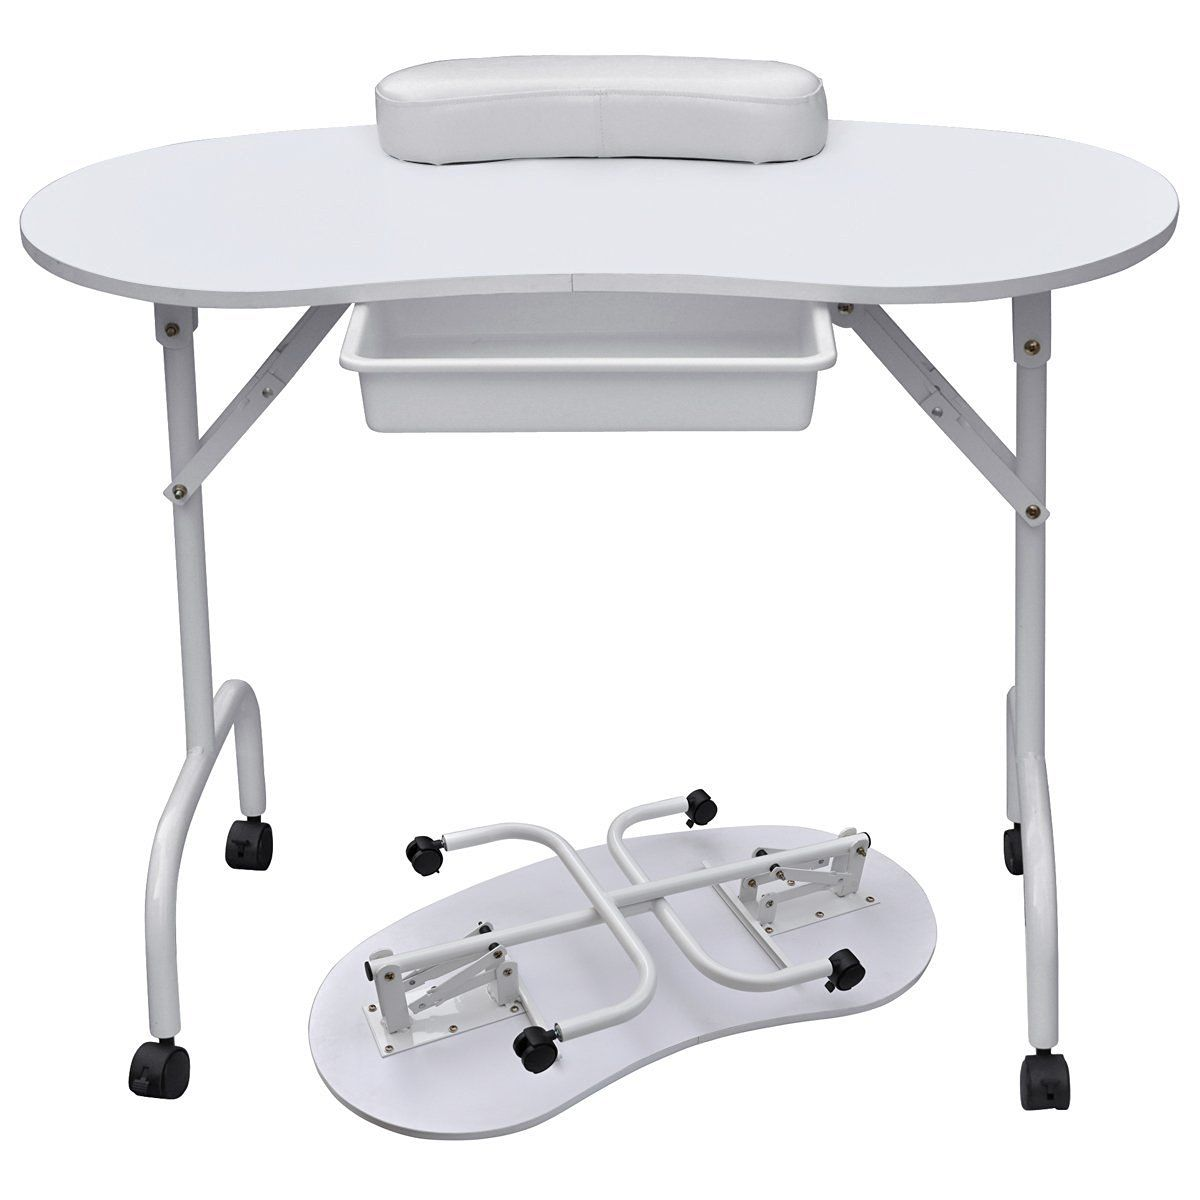 Foldable & Portable Manicure Table Nail Technician Desk